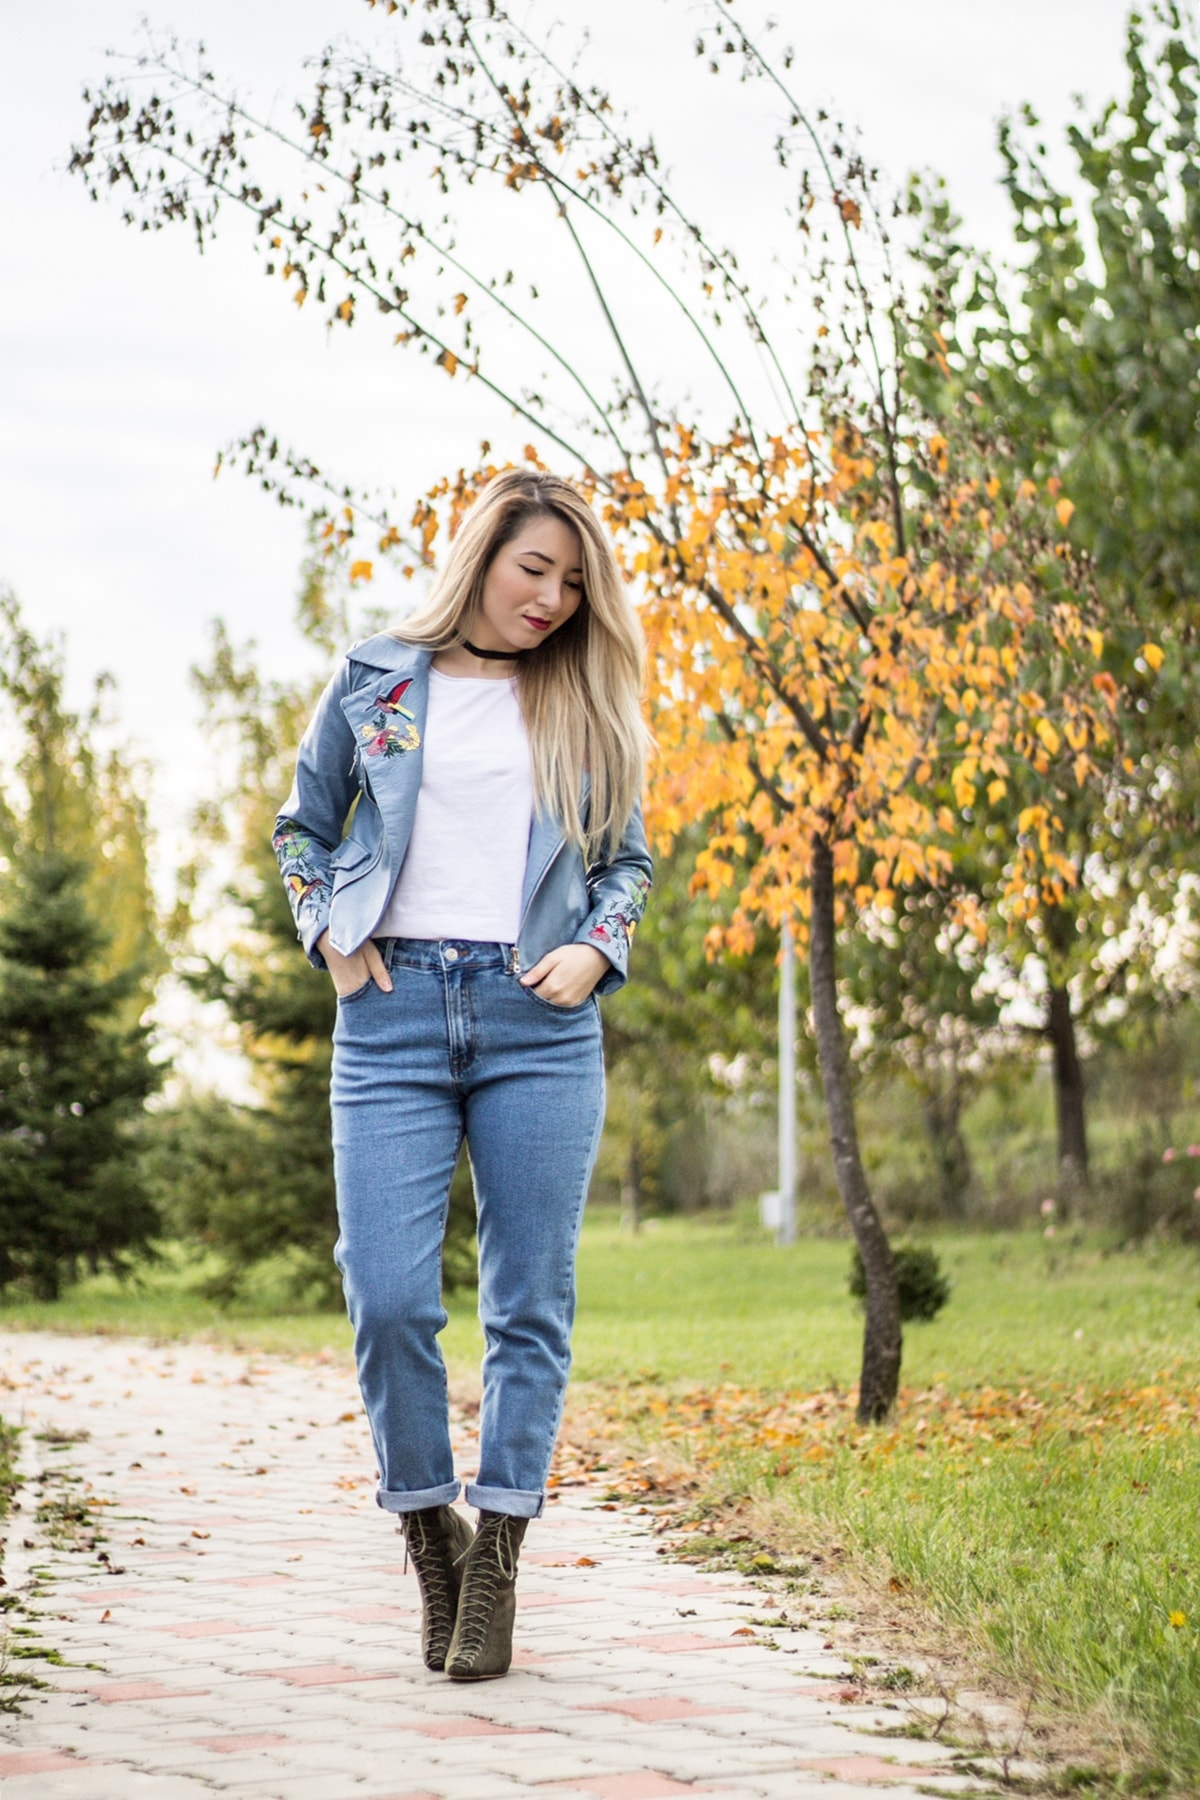 Street style, blue jeans, military green lace up boots, ankle boots, embroidery blue jacket, black choker, white basic tee, autumn look, fashion trends autumn winter 2016, '90s back